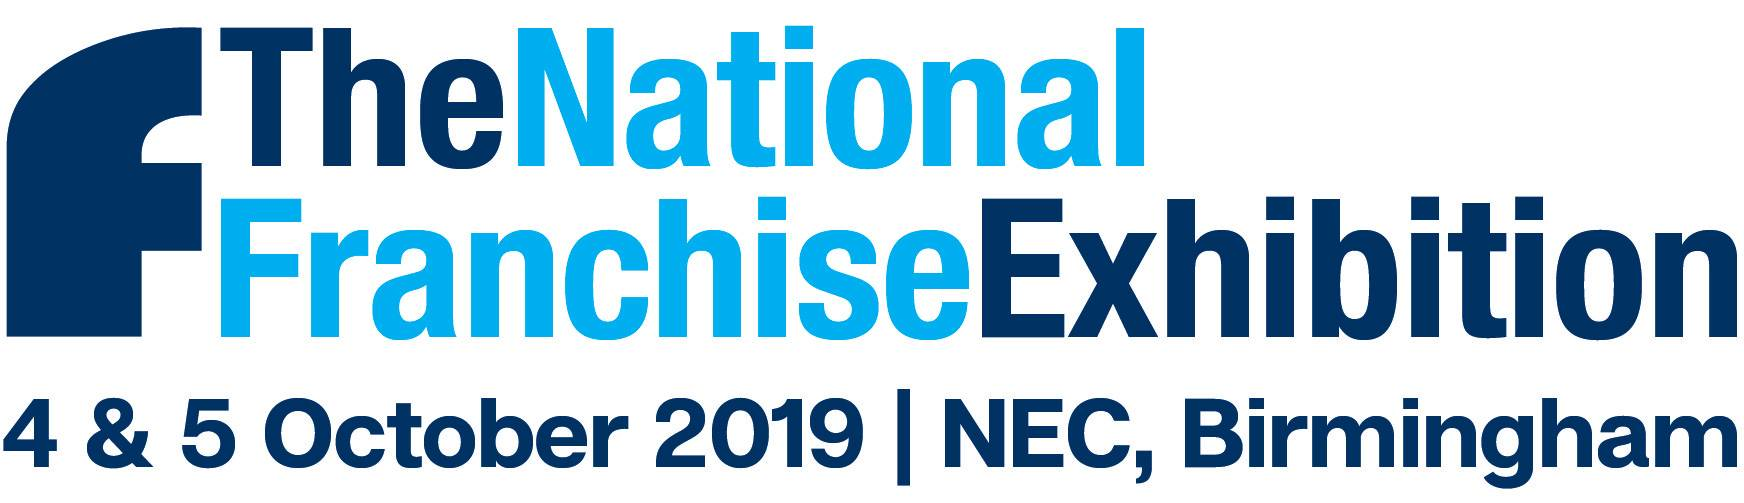 The National Franchise Exhibition in Birmingham 2019